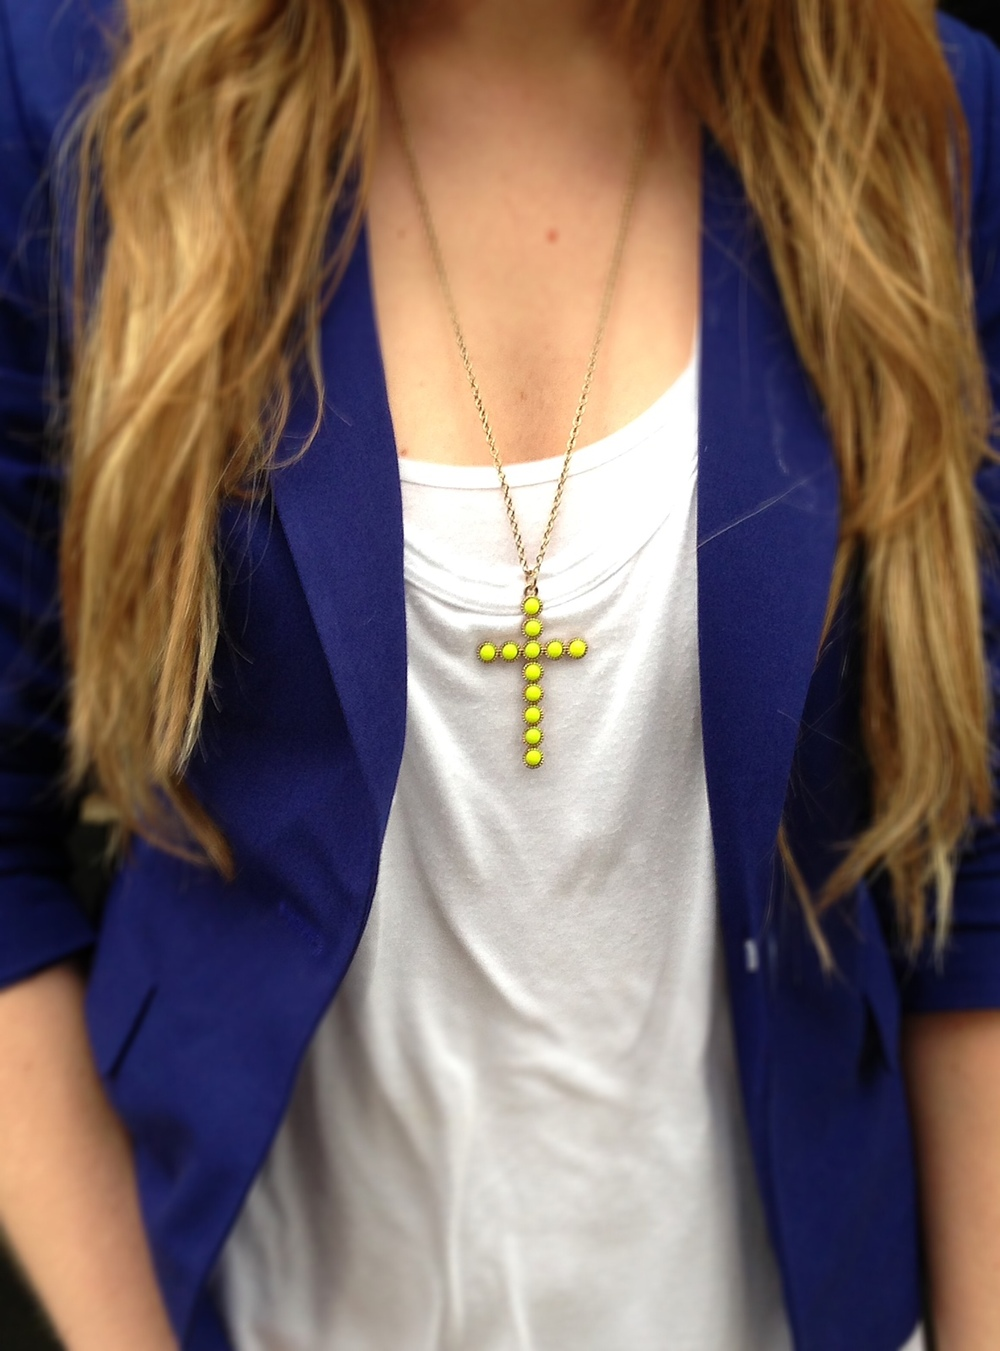 Great cross necklace for a pop of color